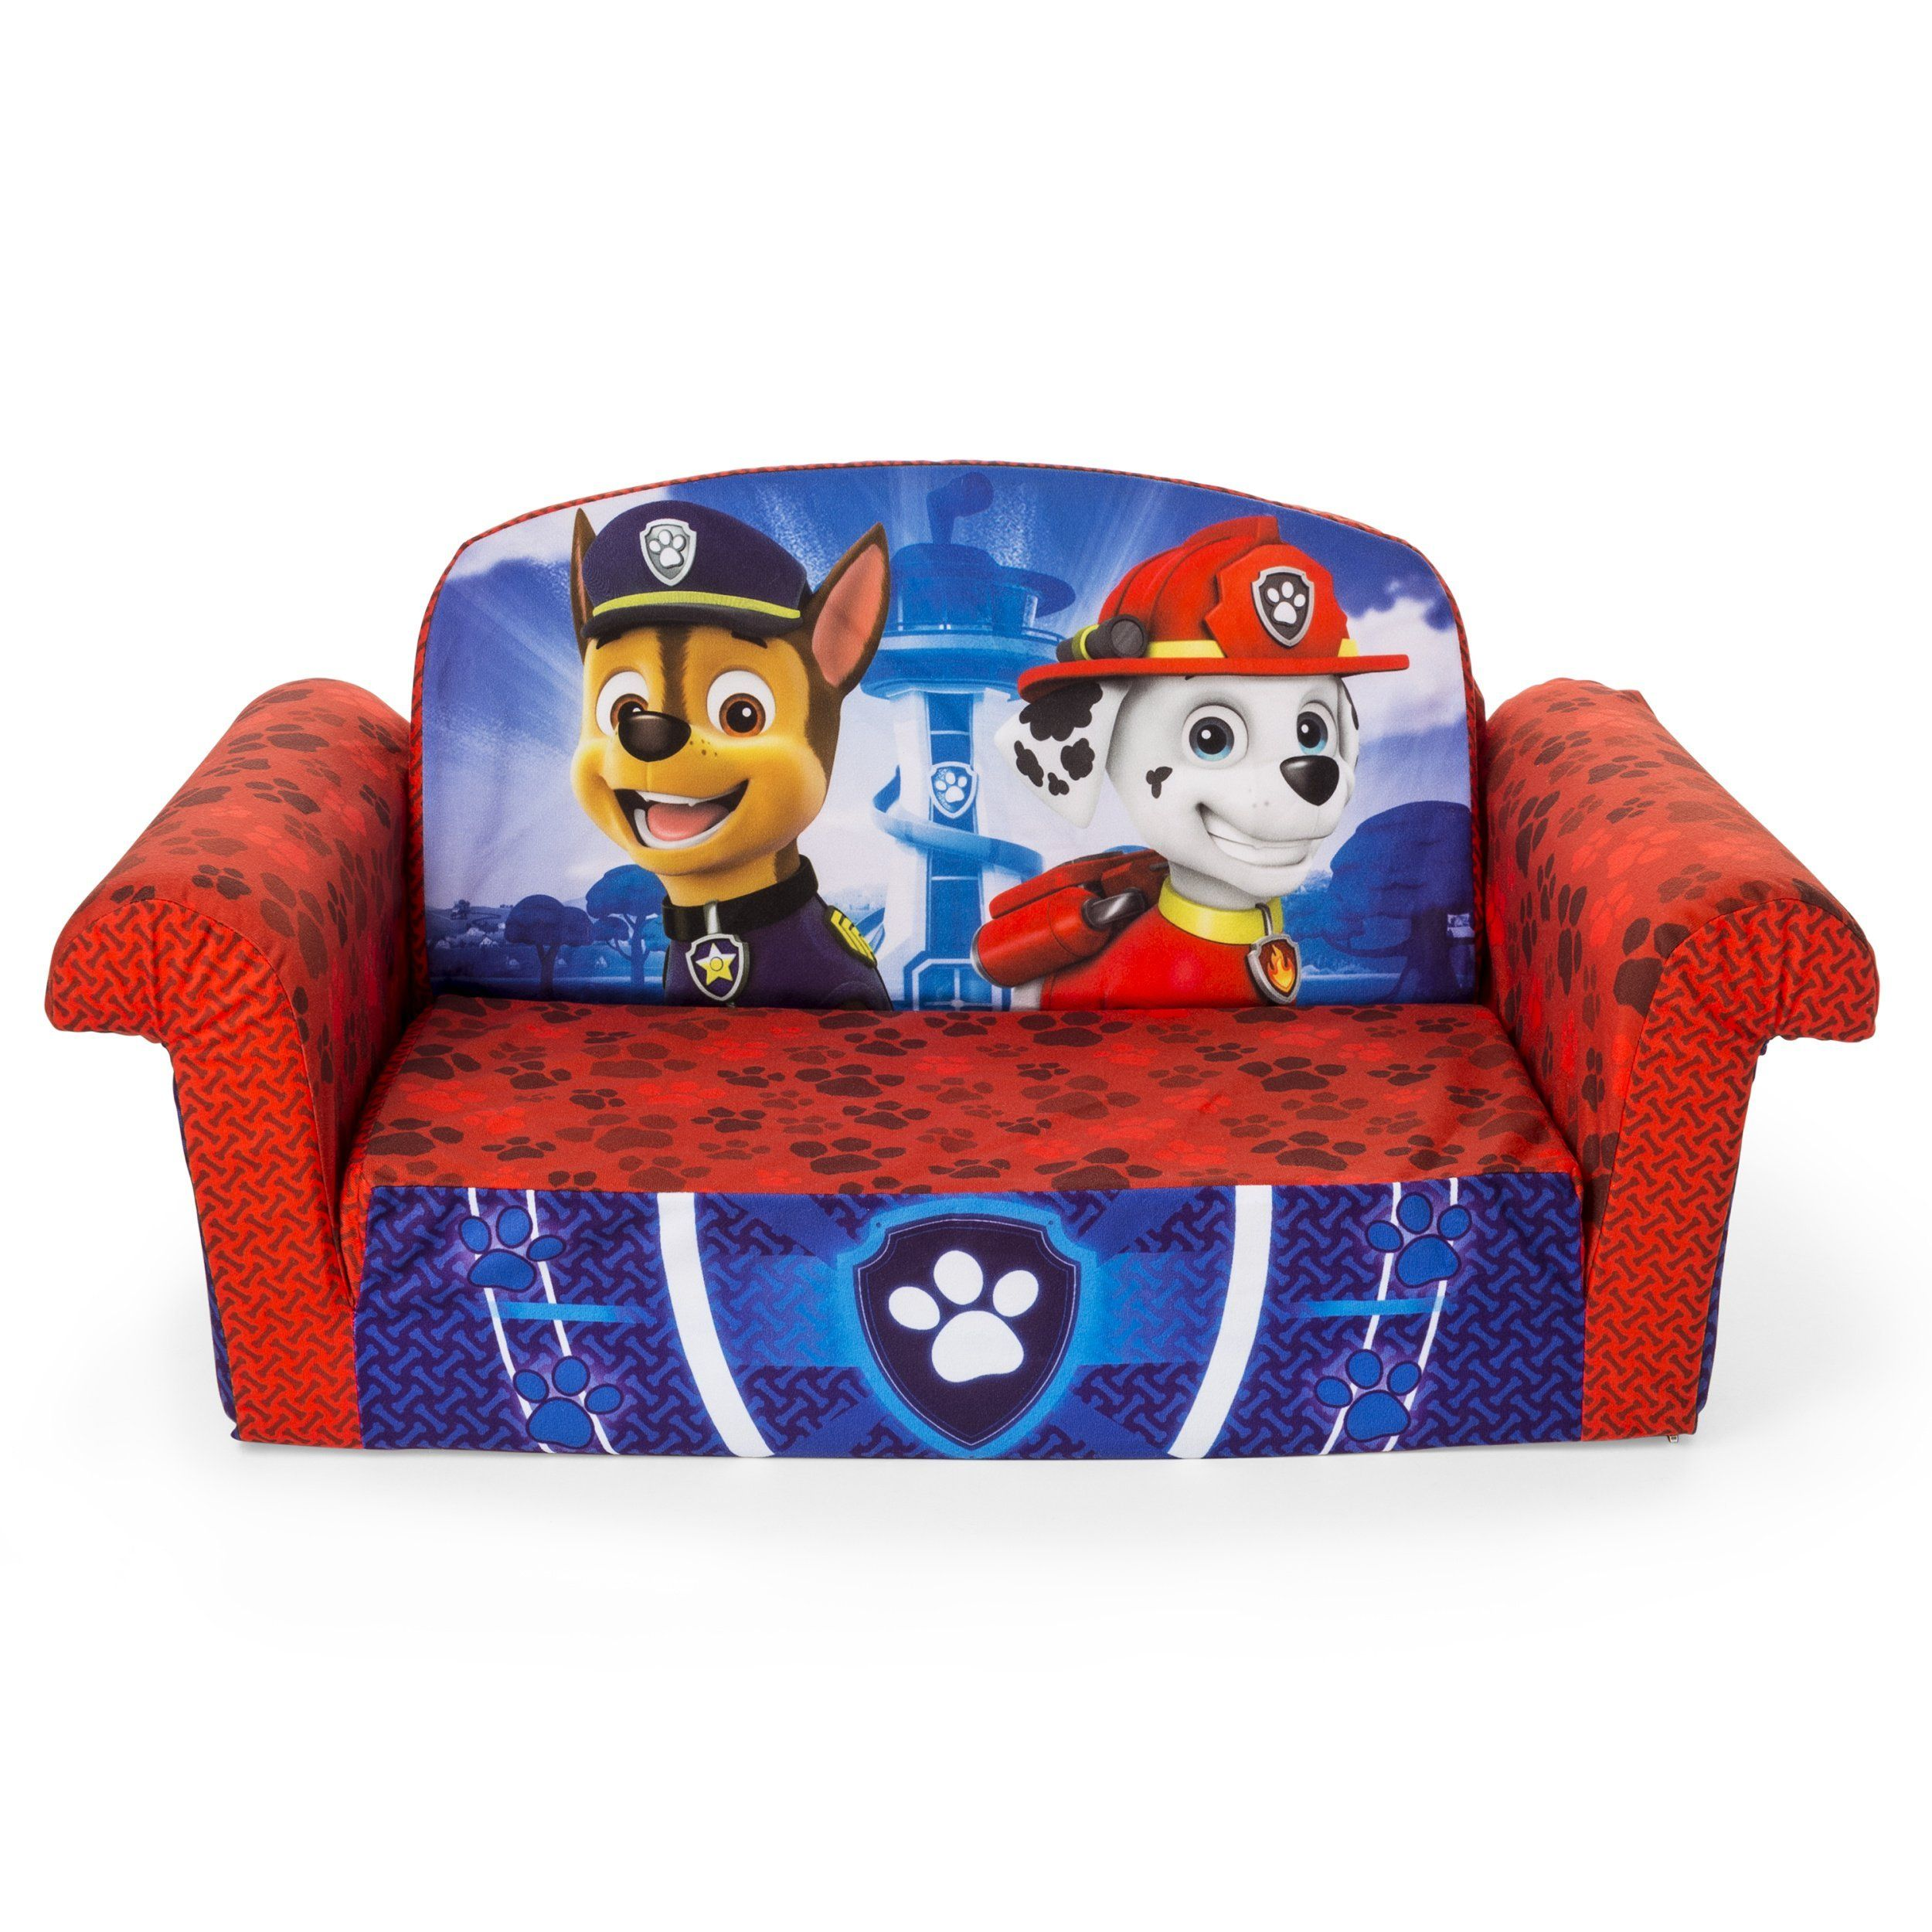 Sofa Infantil Toys R Us Marshmallow Furniture Toys And Games Multicolor You Could Get